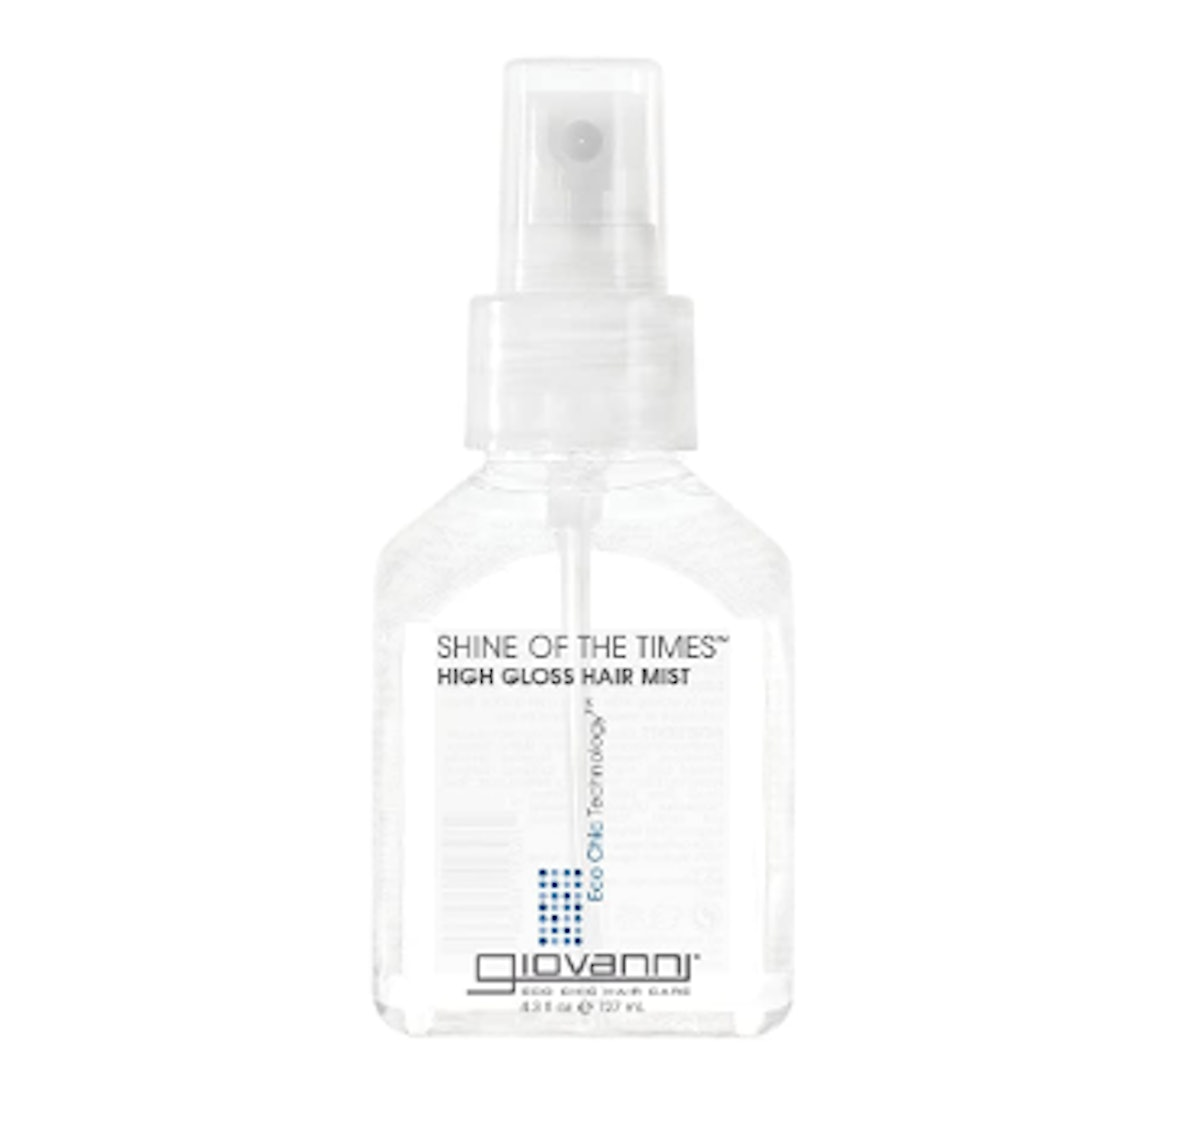 GIOVANNI Shine of the Times Finishing High-Gloss Hair Mist